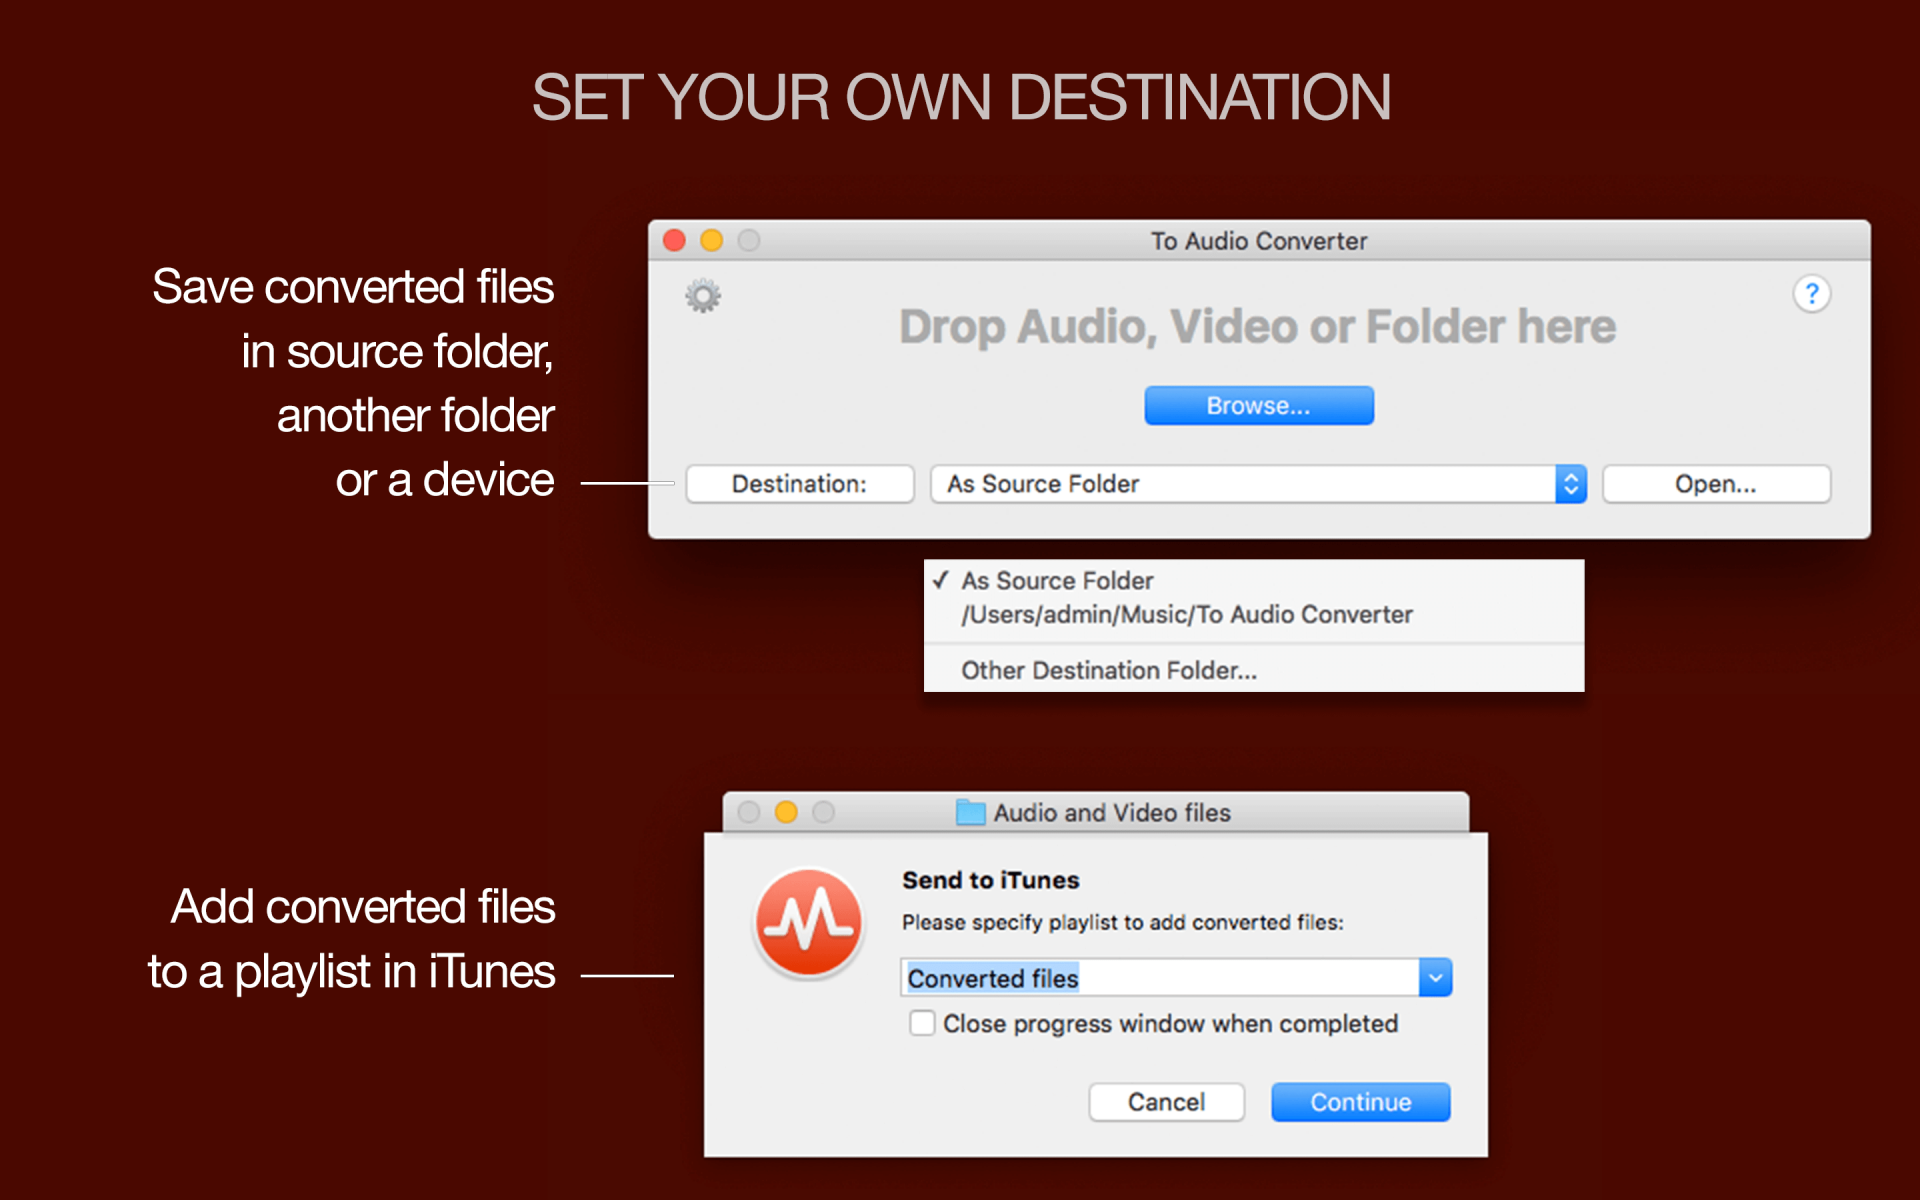 to-audio-converter_4_325006.png